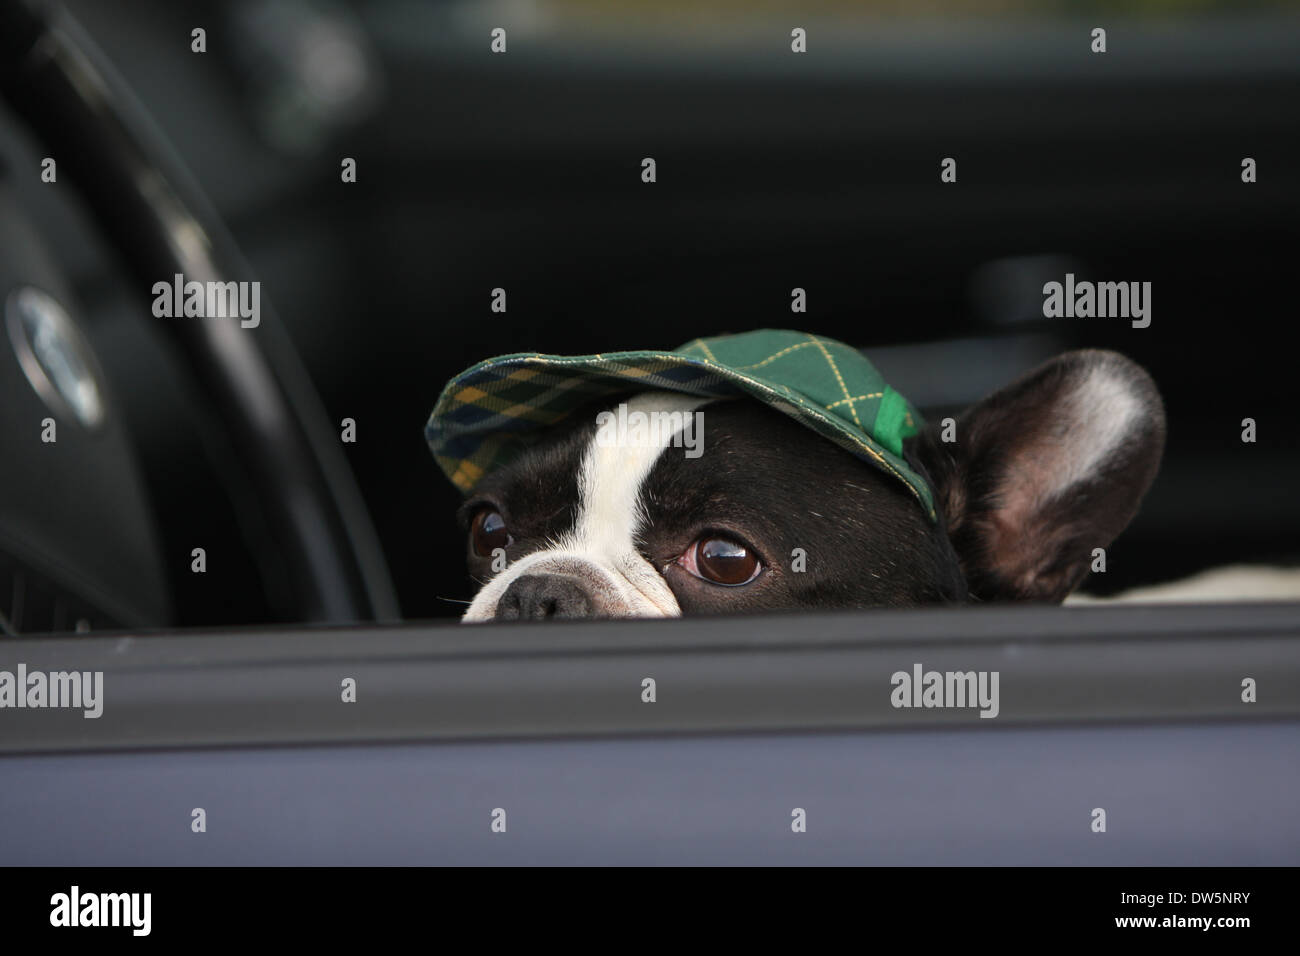 Dog French Bulldog / Bouledogue Français / adult looking out of car window - Stock Image